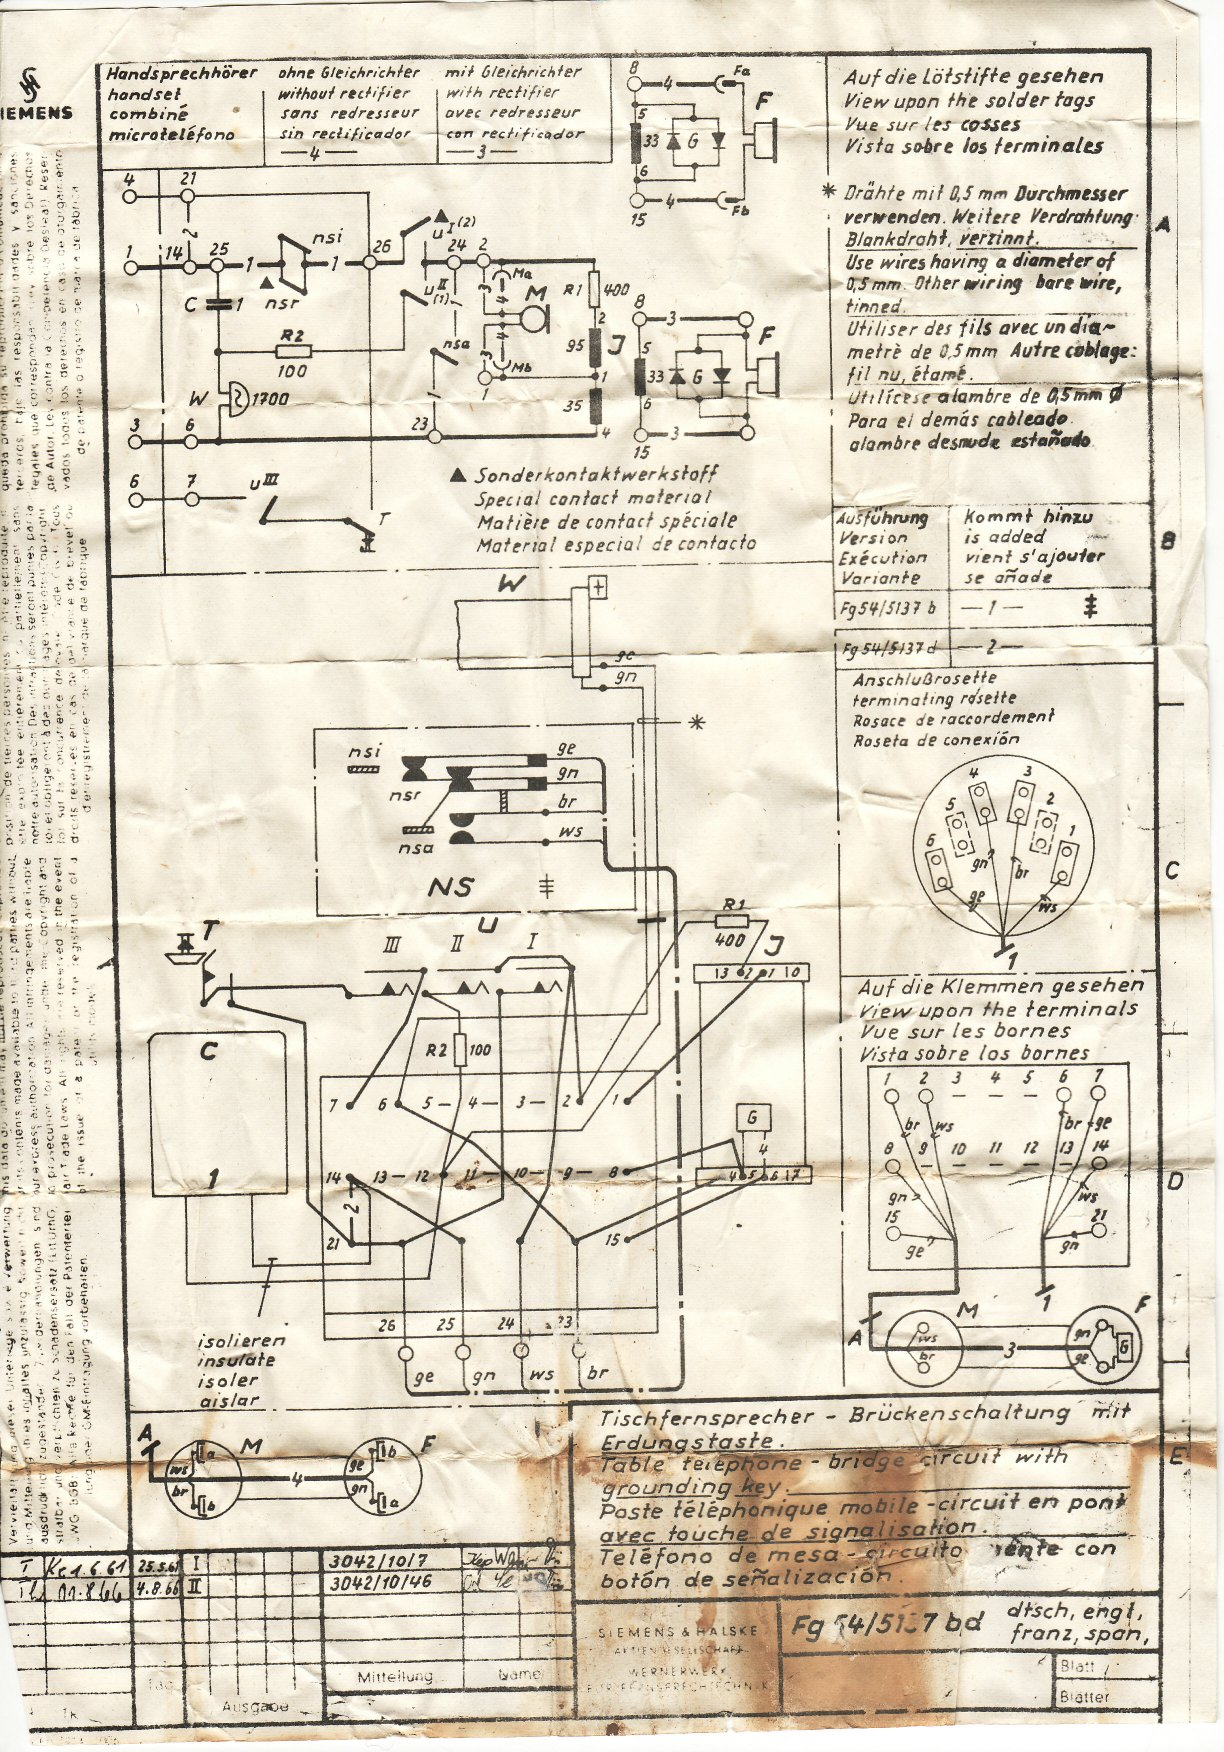 Lawn Mower And Tractor News Recalls moreover How To Install An Ether  Jack For A Home  work Part 3 as well Watch as well Old Telephone Wiring Diagram besides Announcing Aasaver 2 0 With Usb And Lipo Charging. on old phone wiring plug diagram